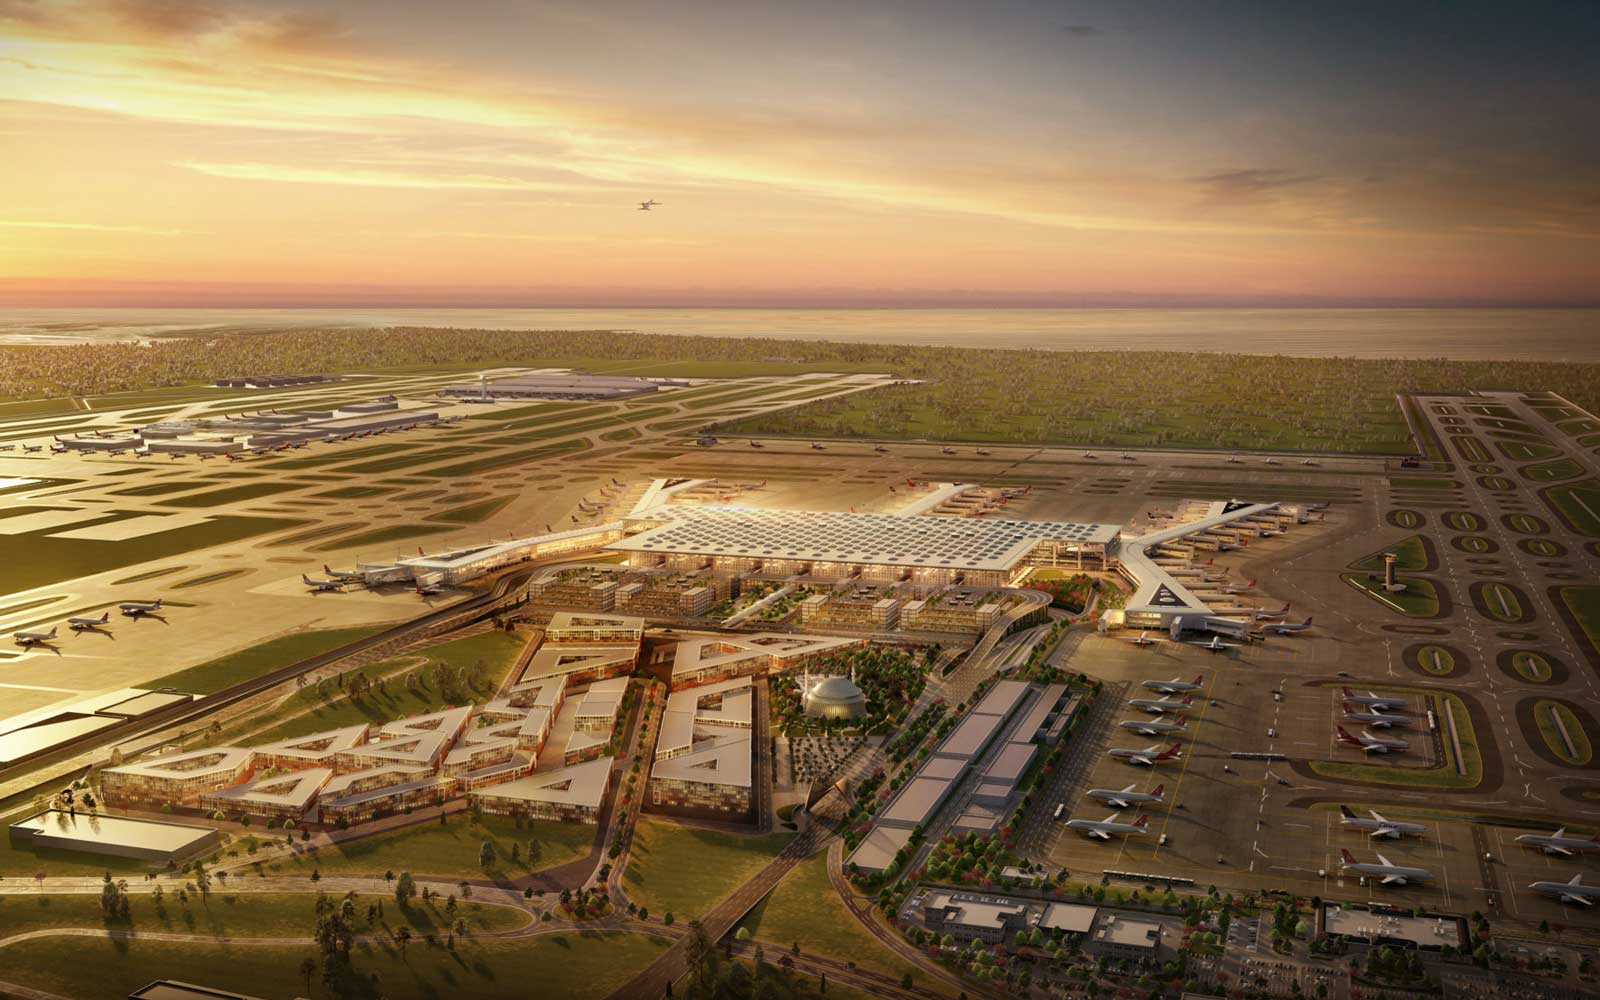 The airport is set to become the world's largest at around 823 million square feet in size.